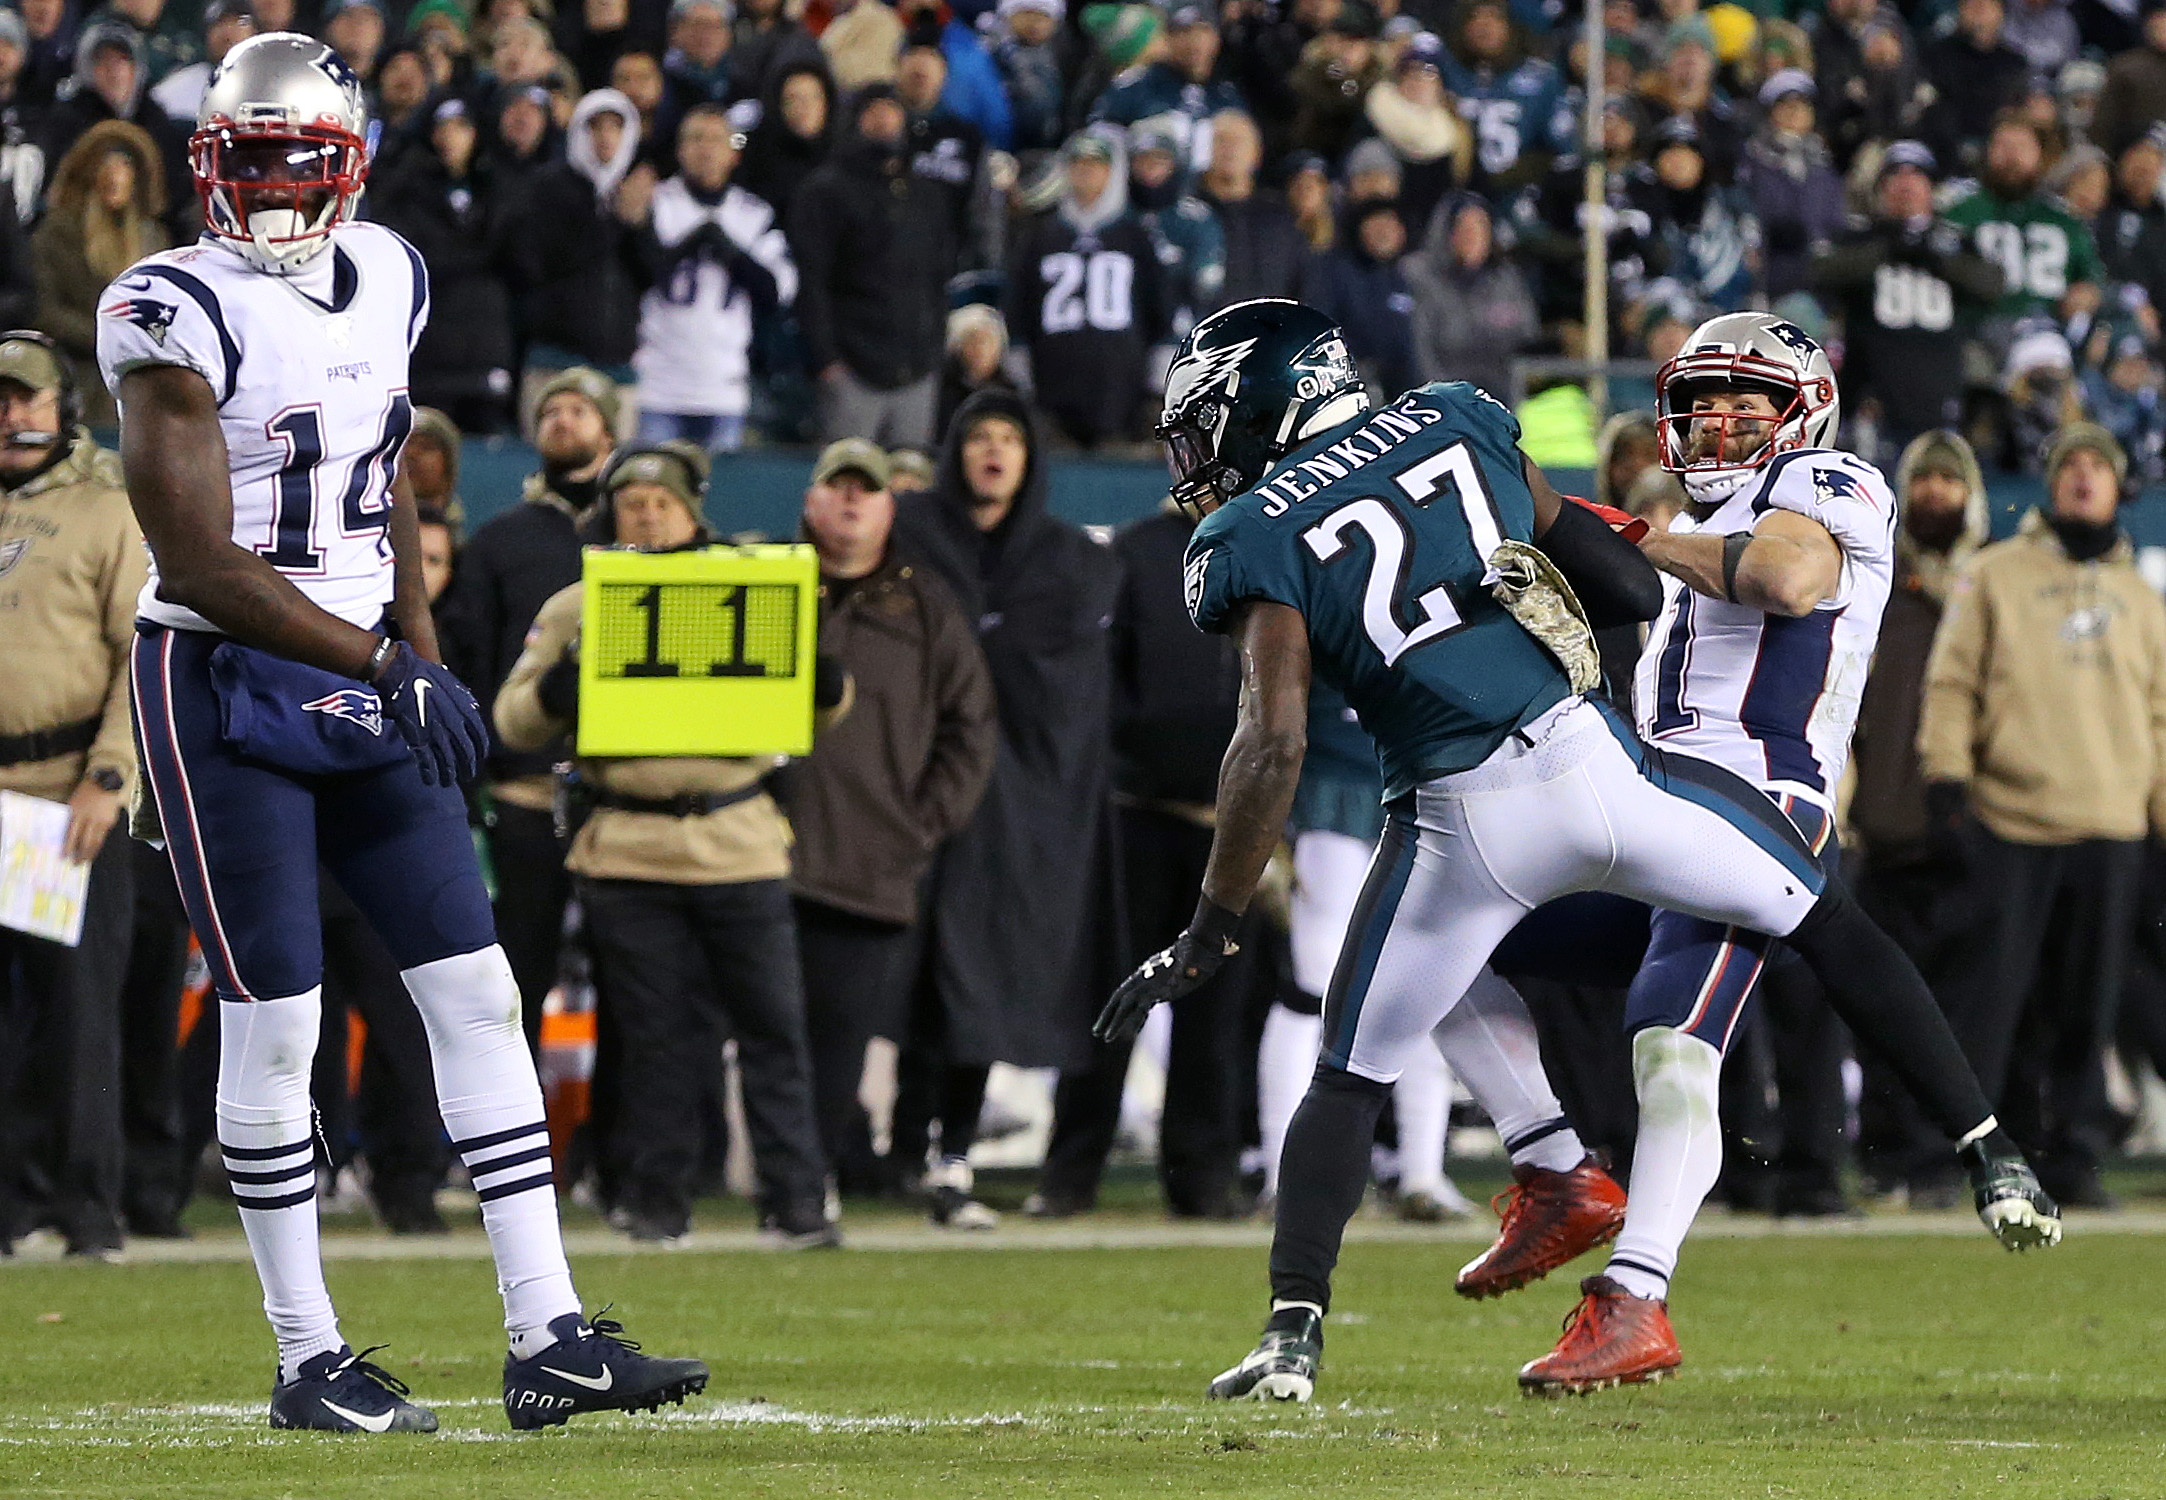 With Patriots offense struggling, Julian Edelman delivered